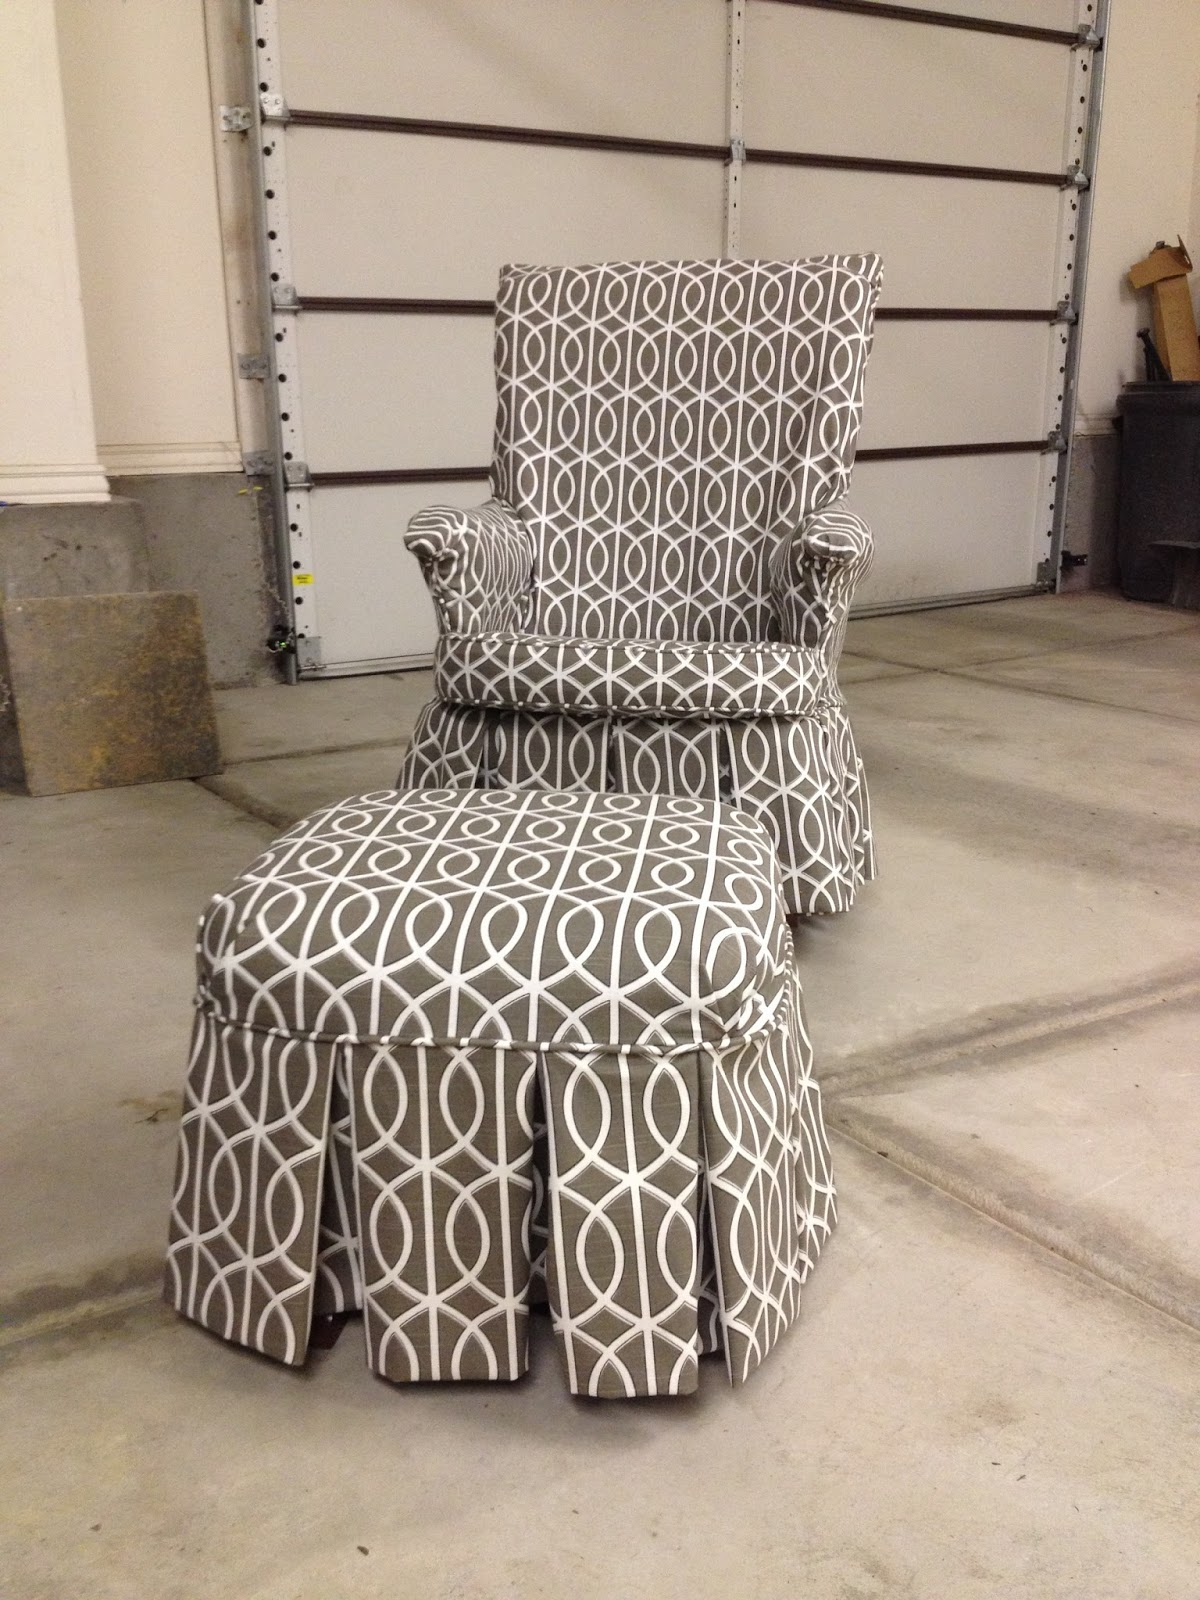 How To Recover Glider Rocking Chair Cushions Designboom The Sewing Nerd Slipcovers Right